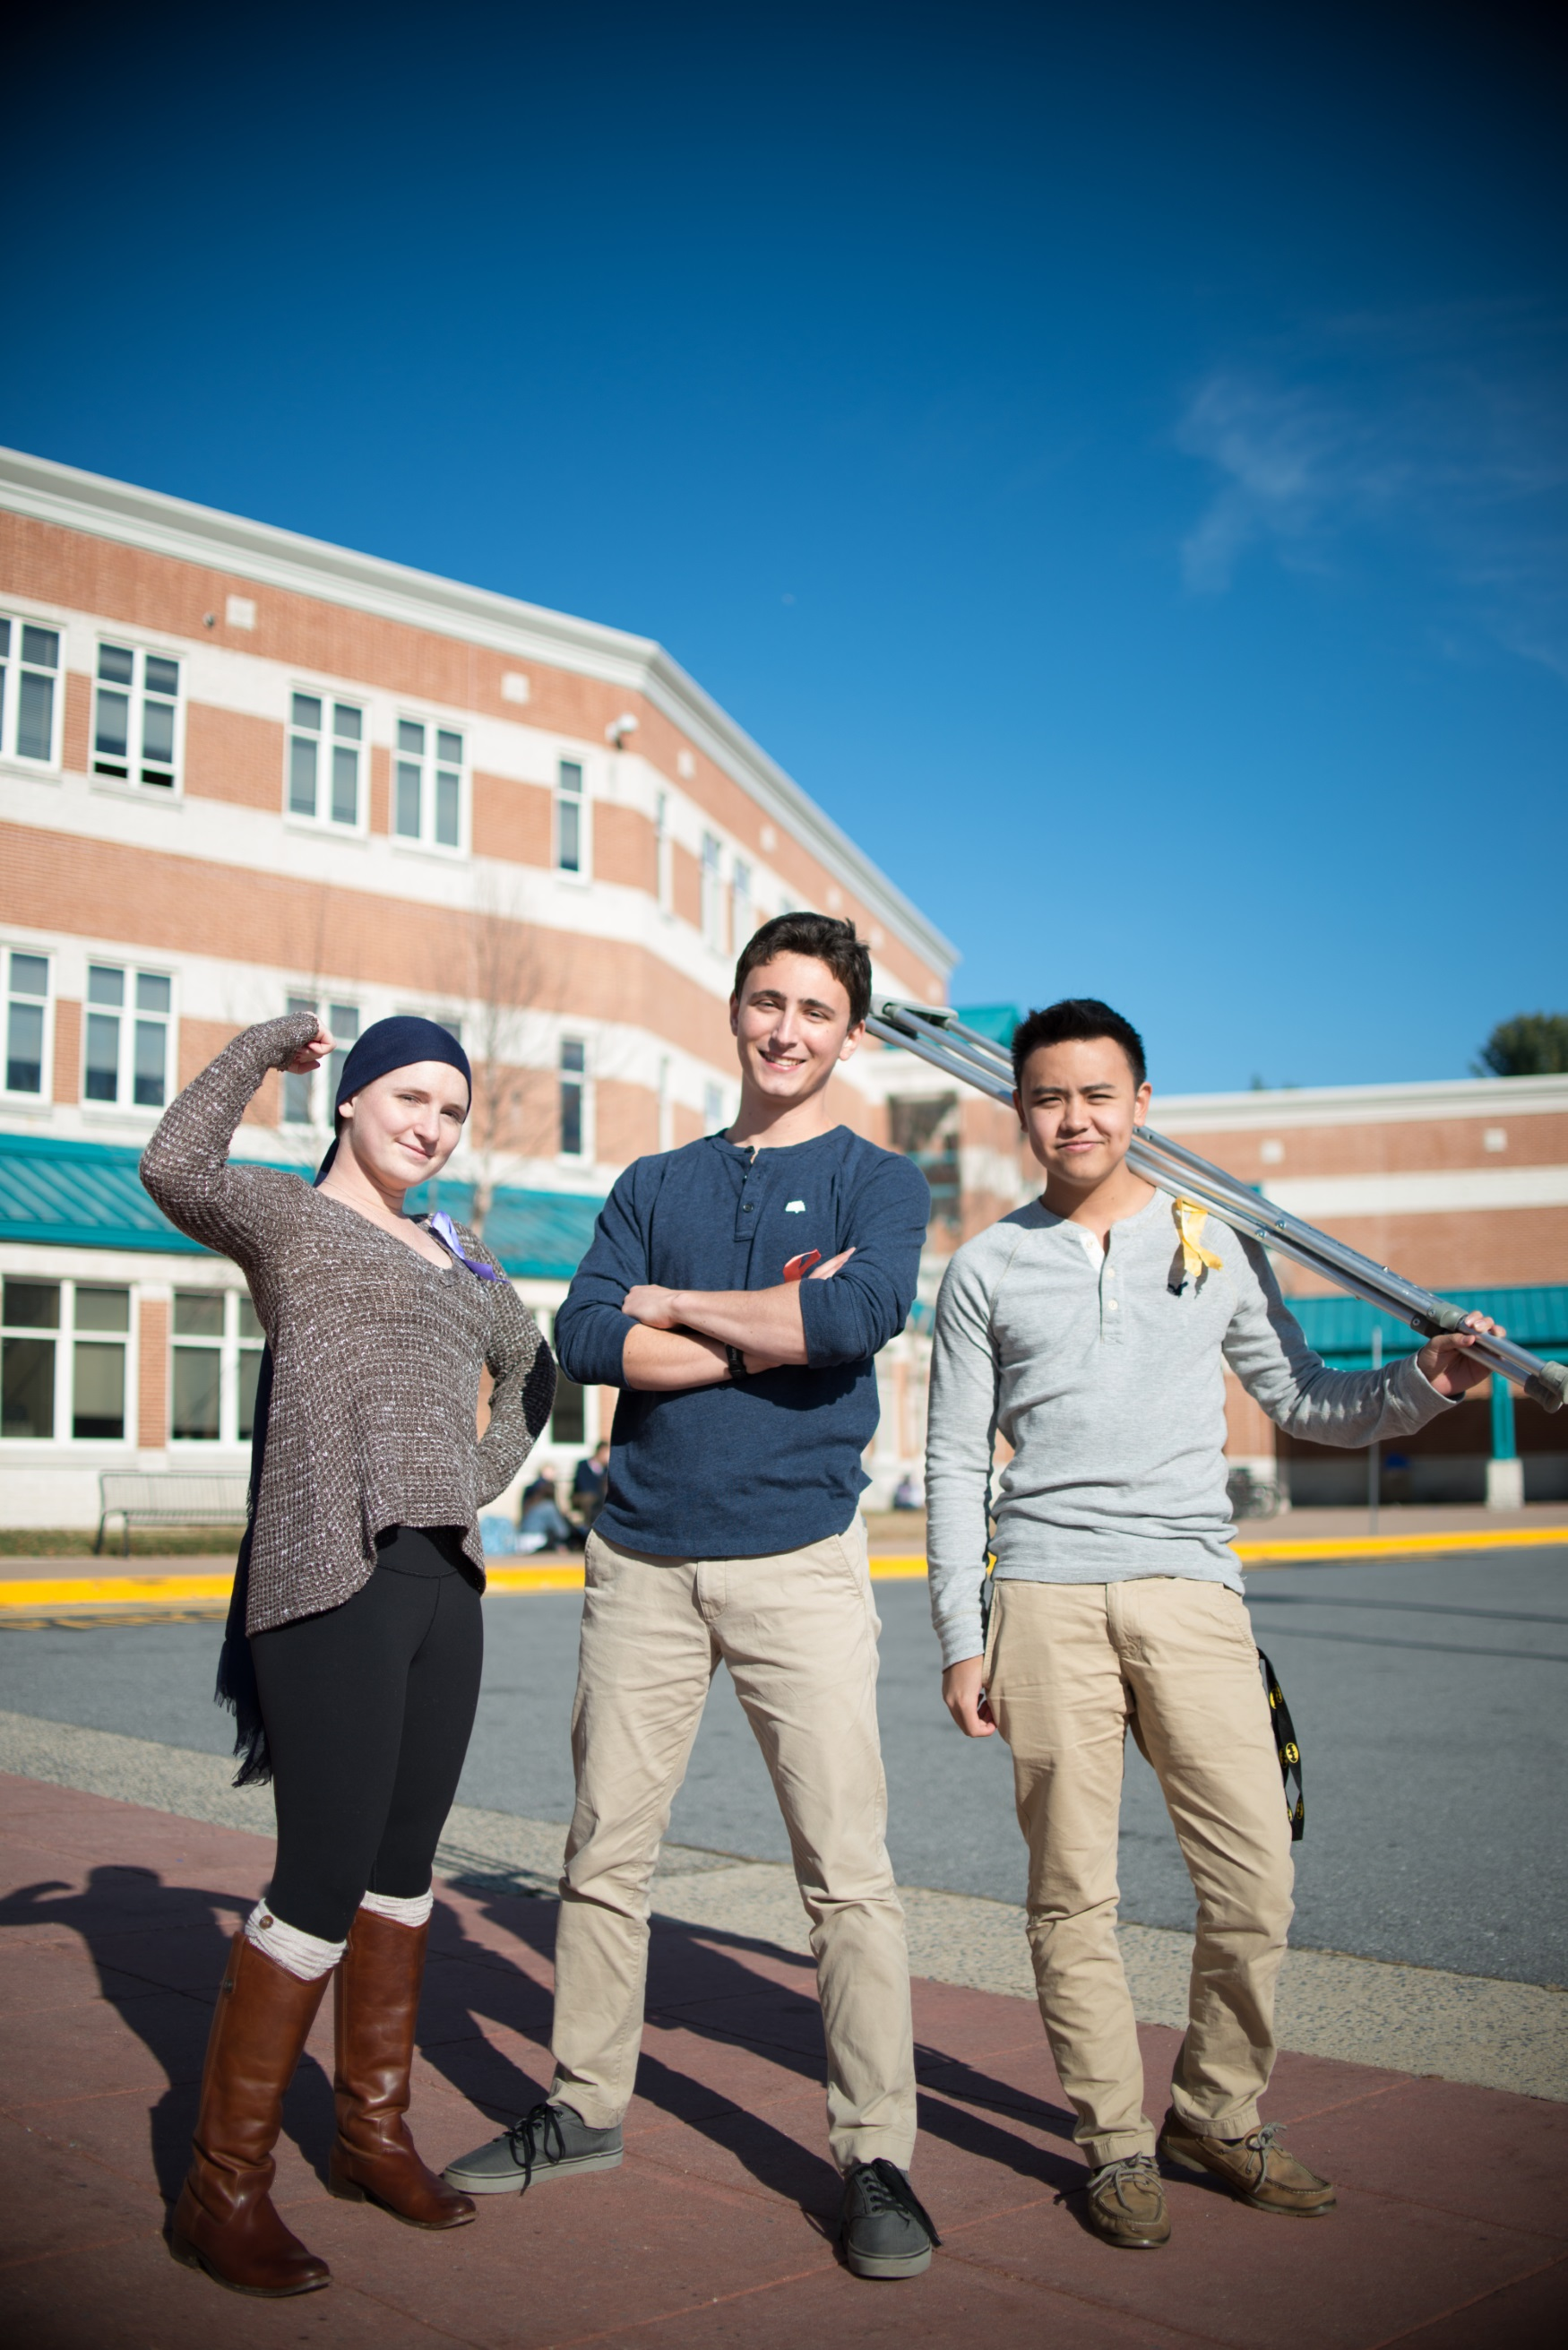 The students fighting caner are Whitman's real-life superheroes. Photo by Tomas Castro.